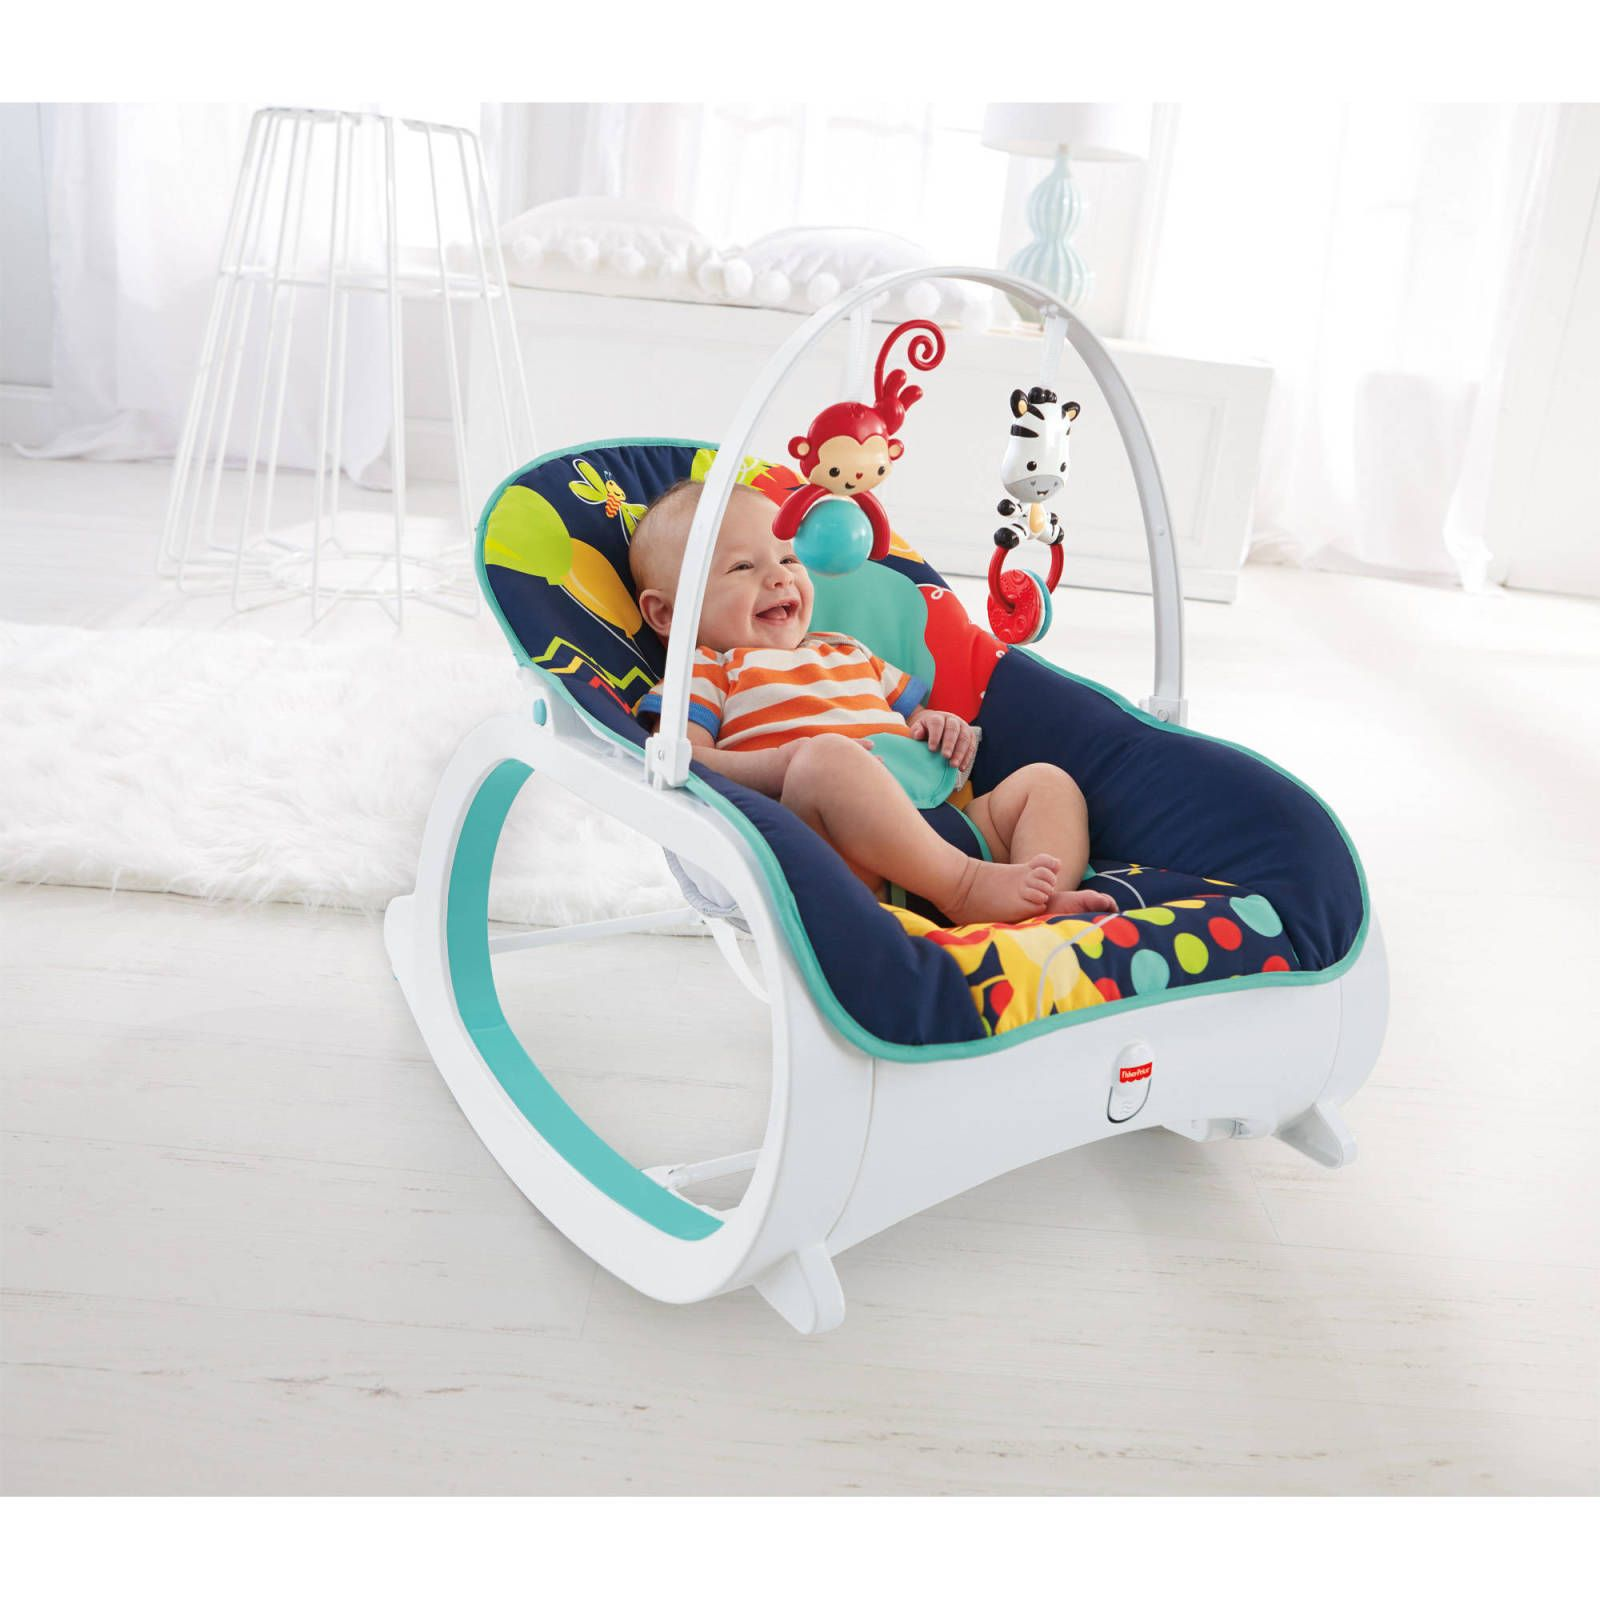 New Fisher Price Infant Car Seats Toddler Baby Chair Play Bouncer Free Shipping Baby Rocker Baby Seat Cool Baby Stuff